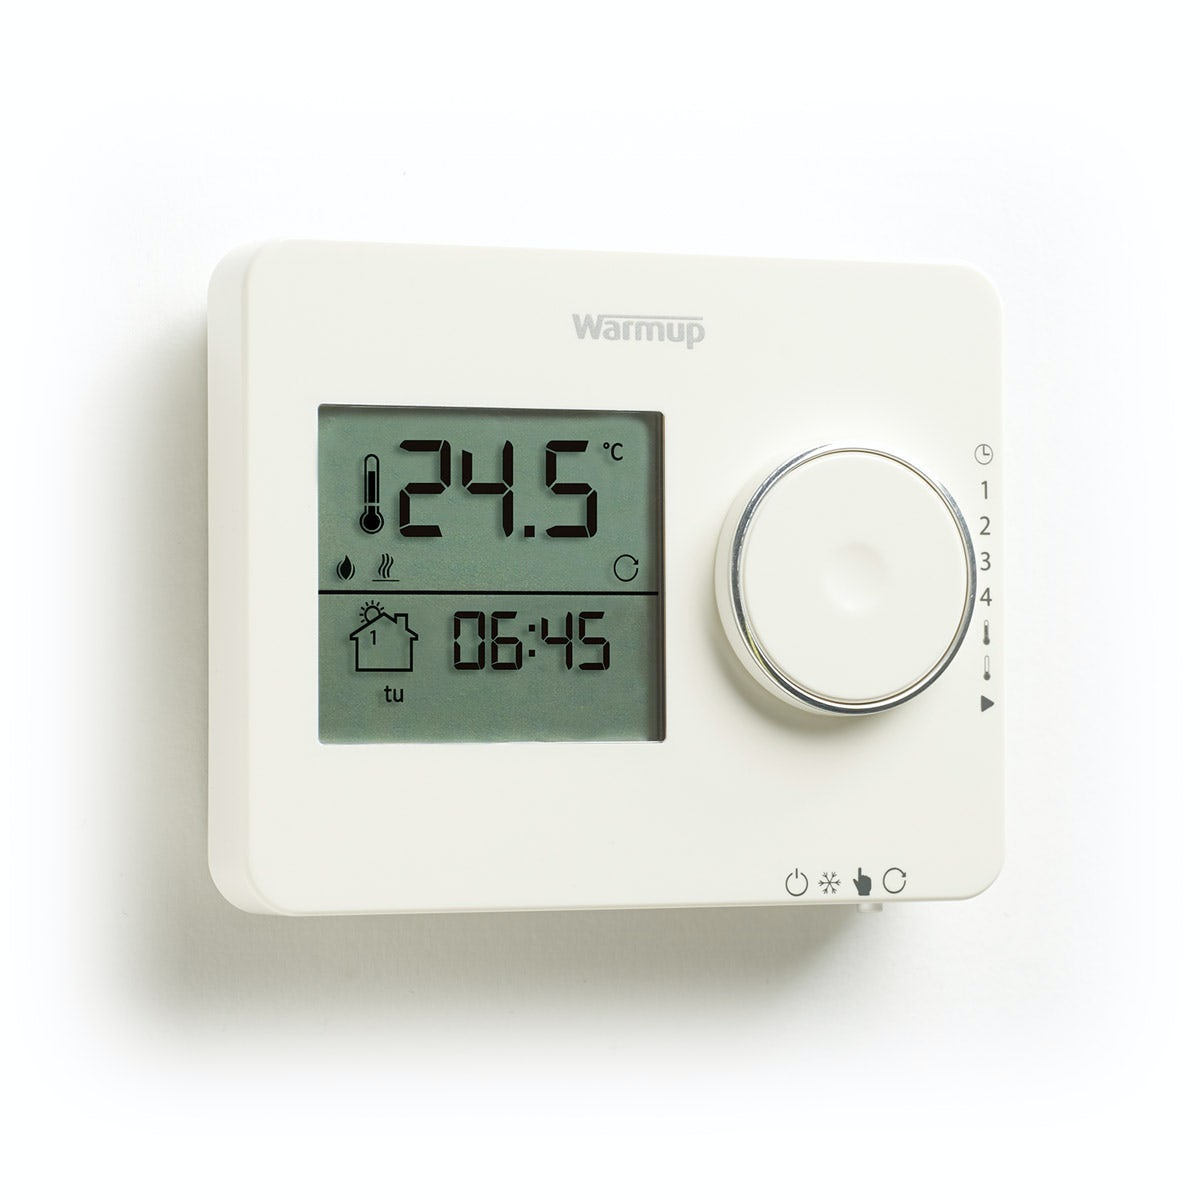 Warmup Tempo underfloor heating thermostat porcelain white